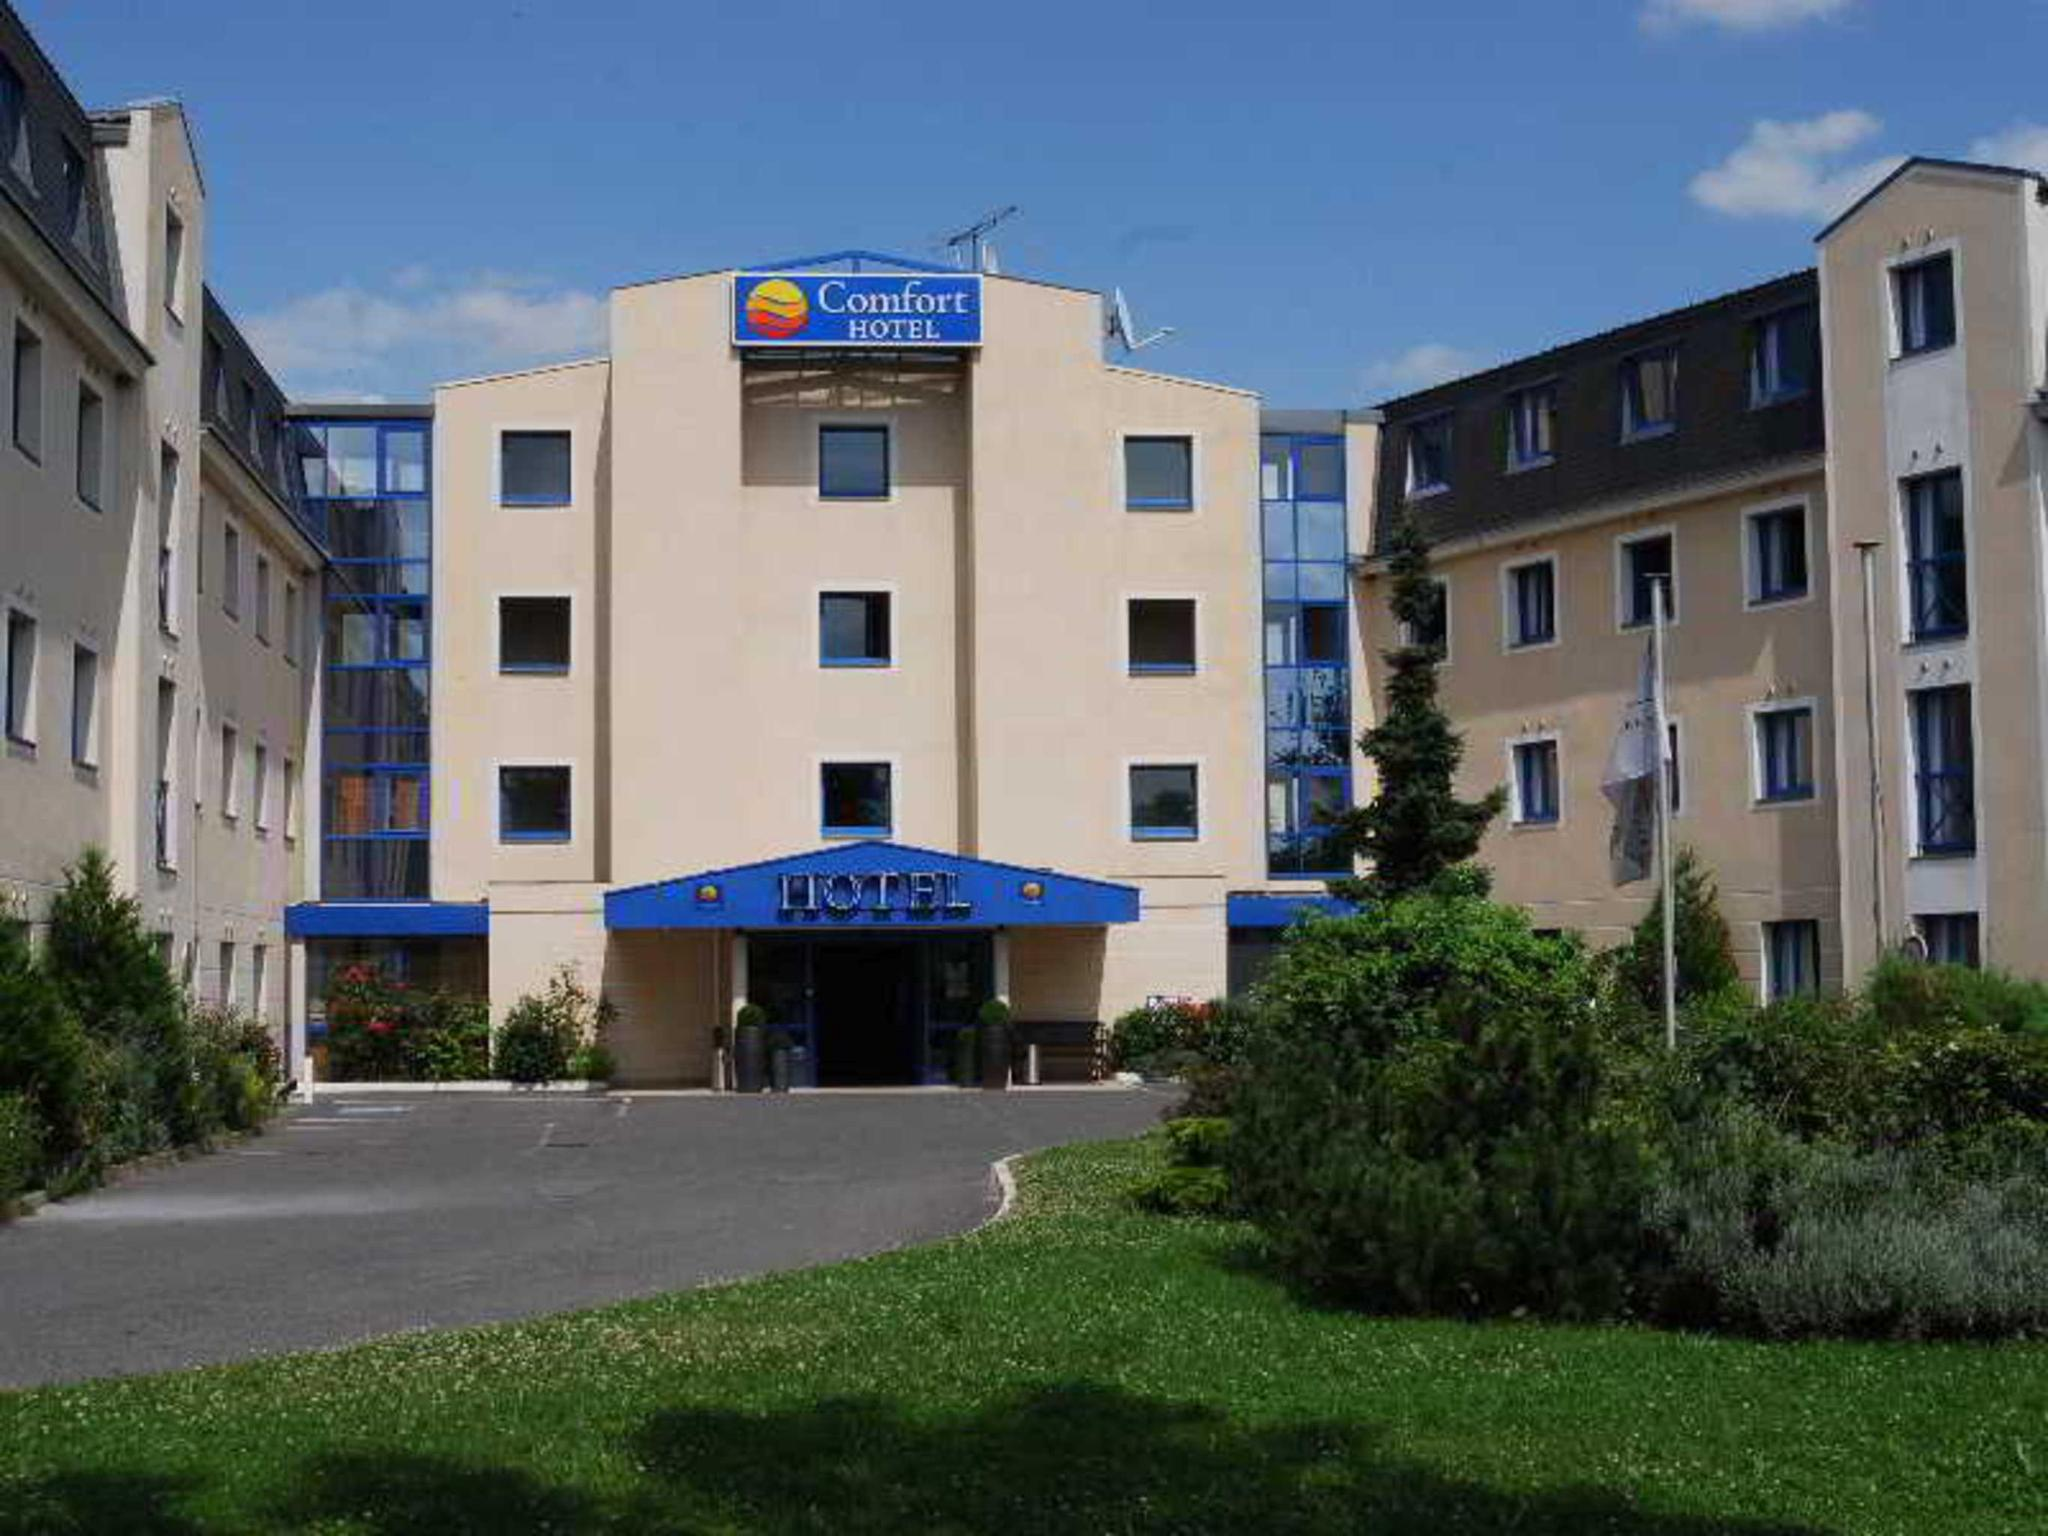 Seine Et Marne Department Hotel Booking Seine Et Marne